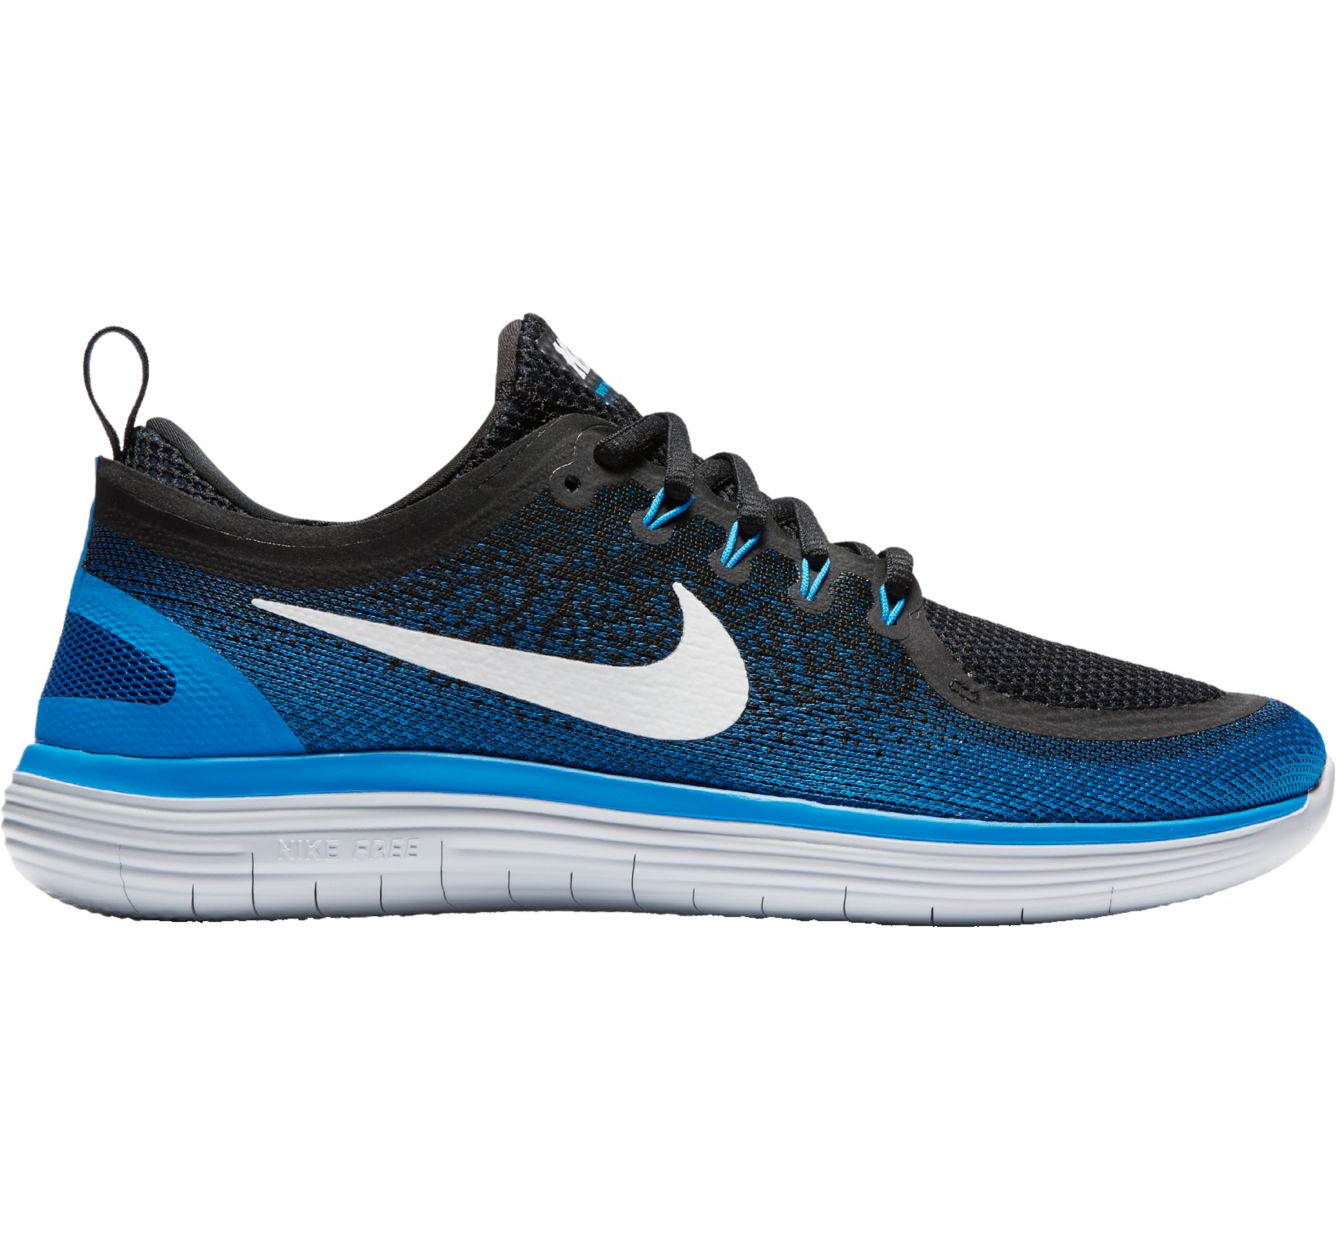 NIKE FREE RN DISTANCE 2 RUNNING SHOES